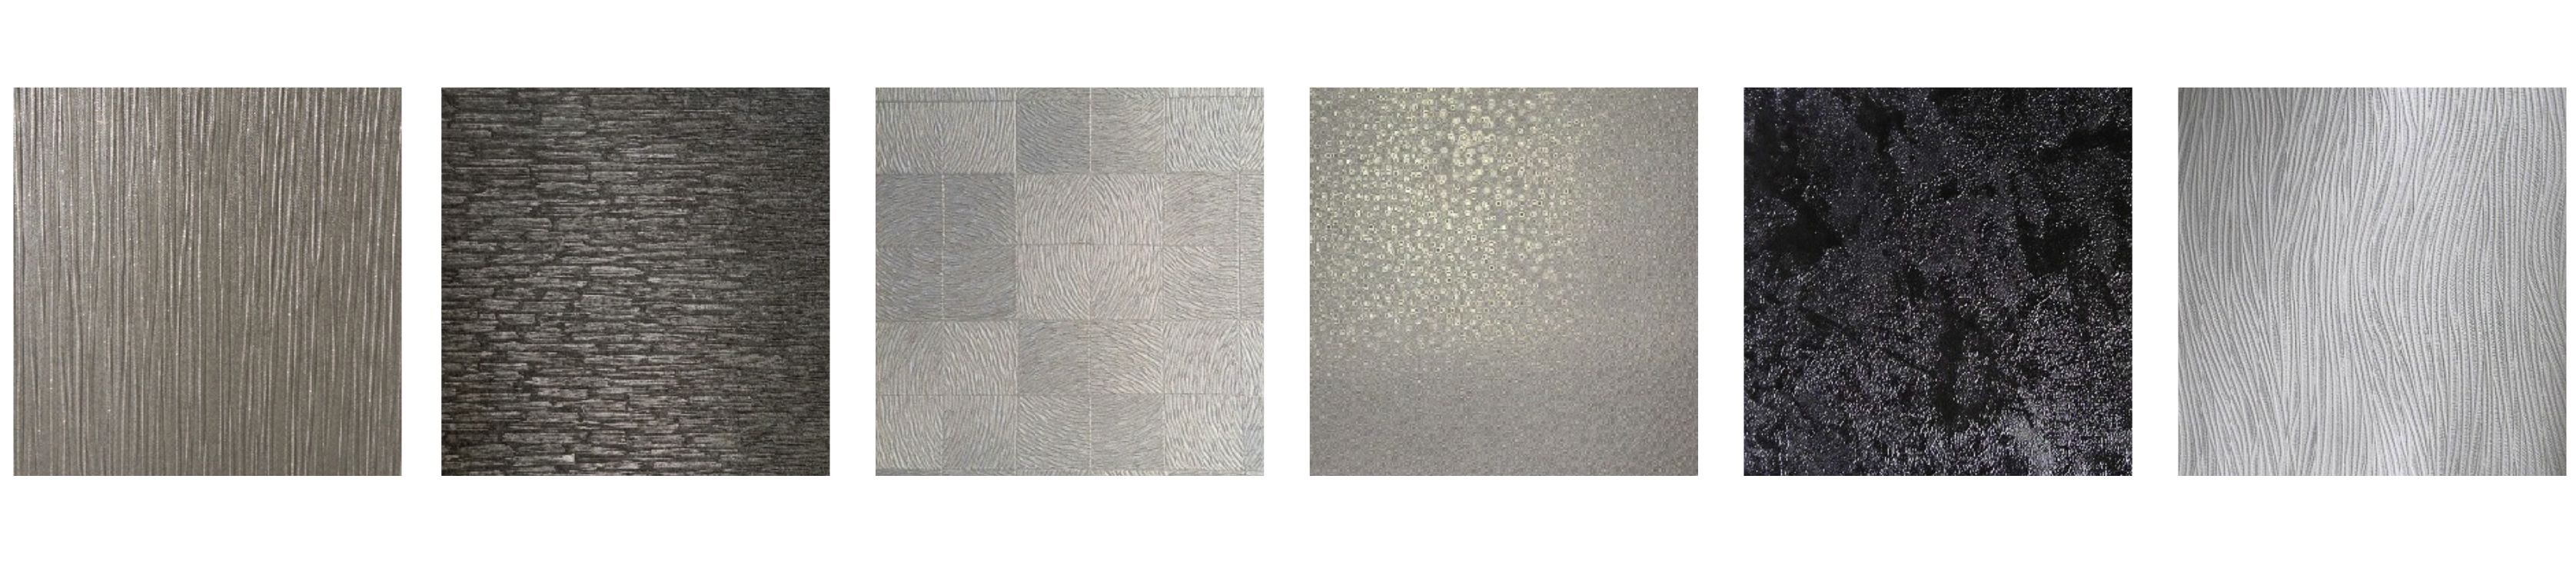 Funky Ways to Cover Your Walls - Textured Wall Covering